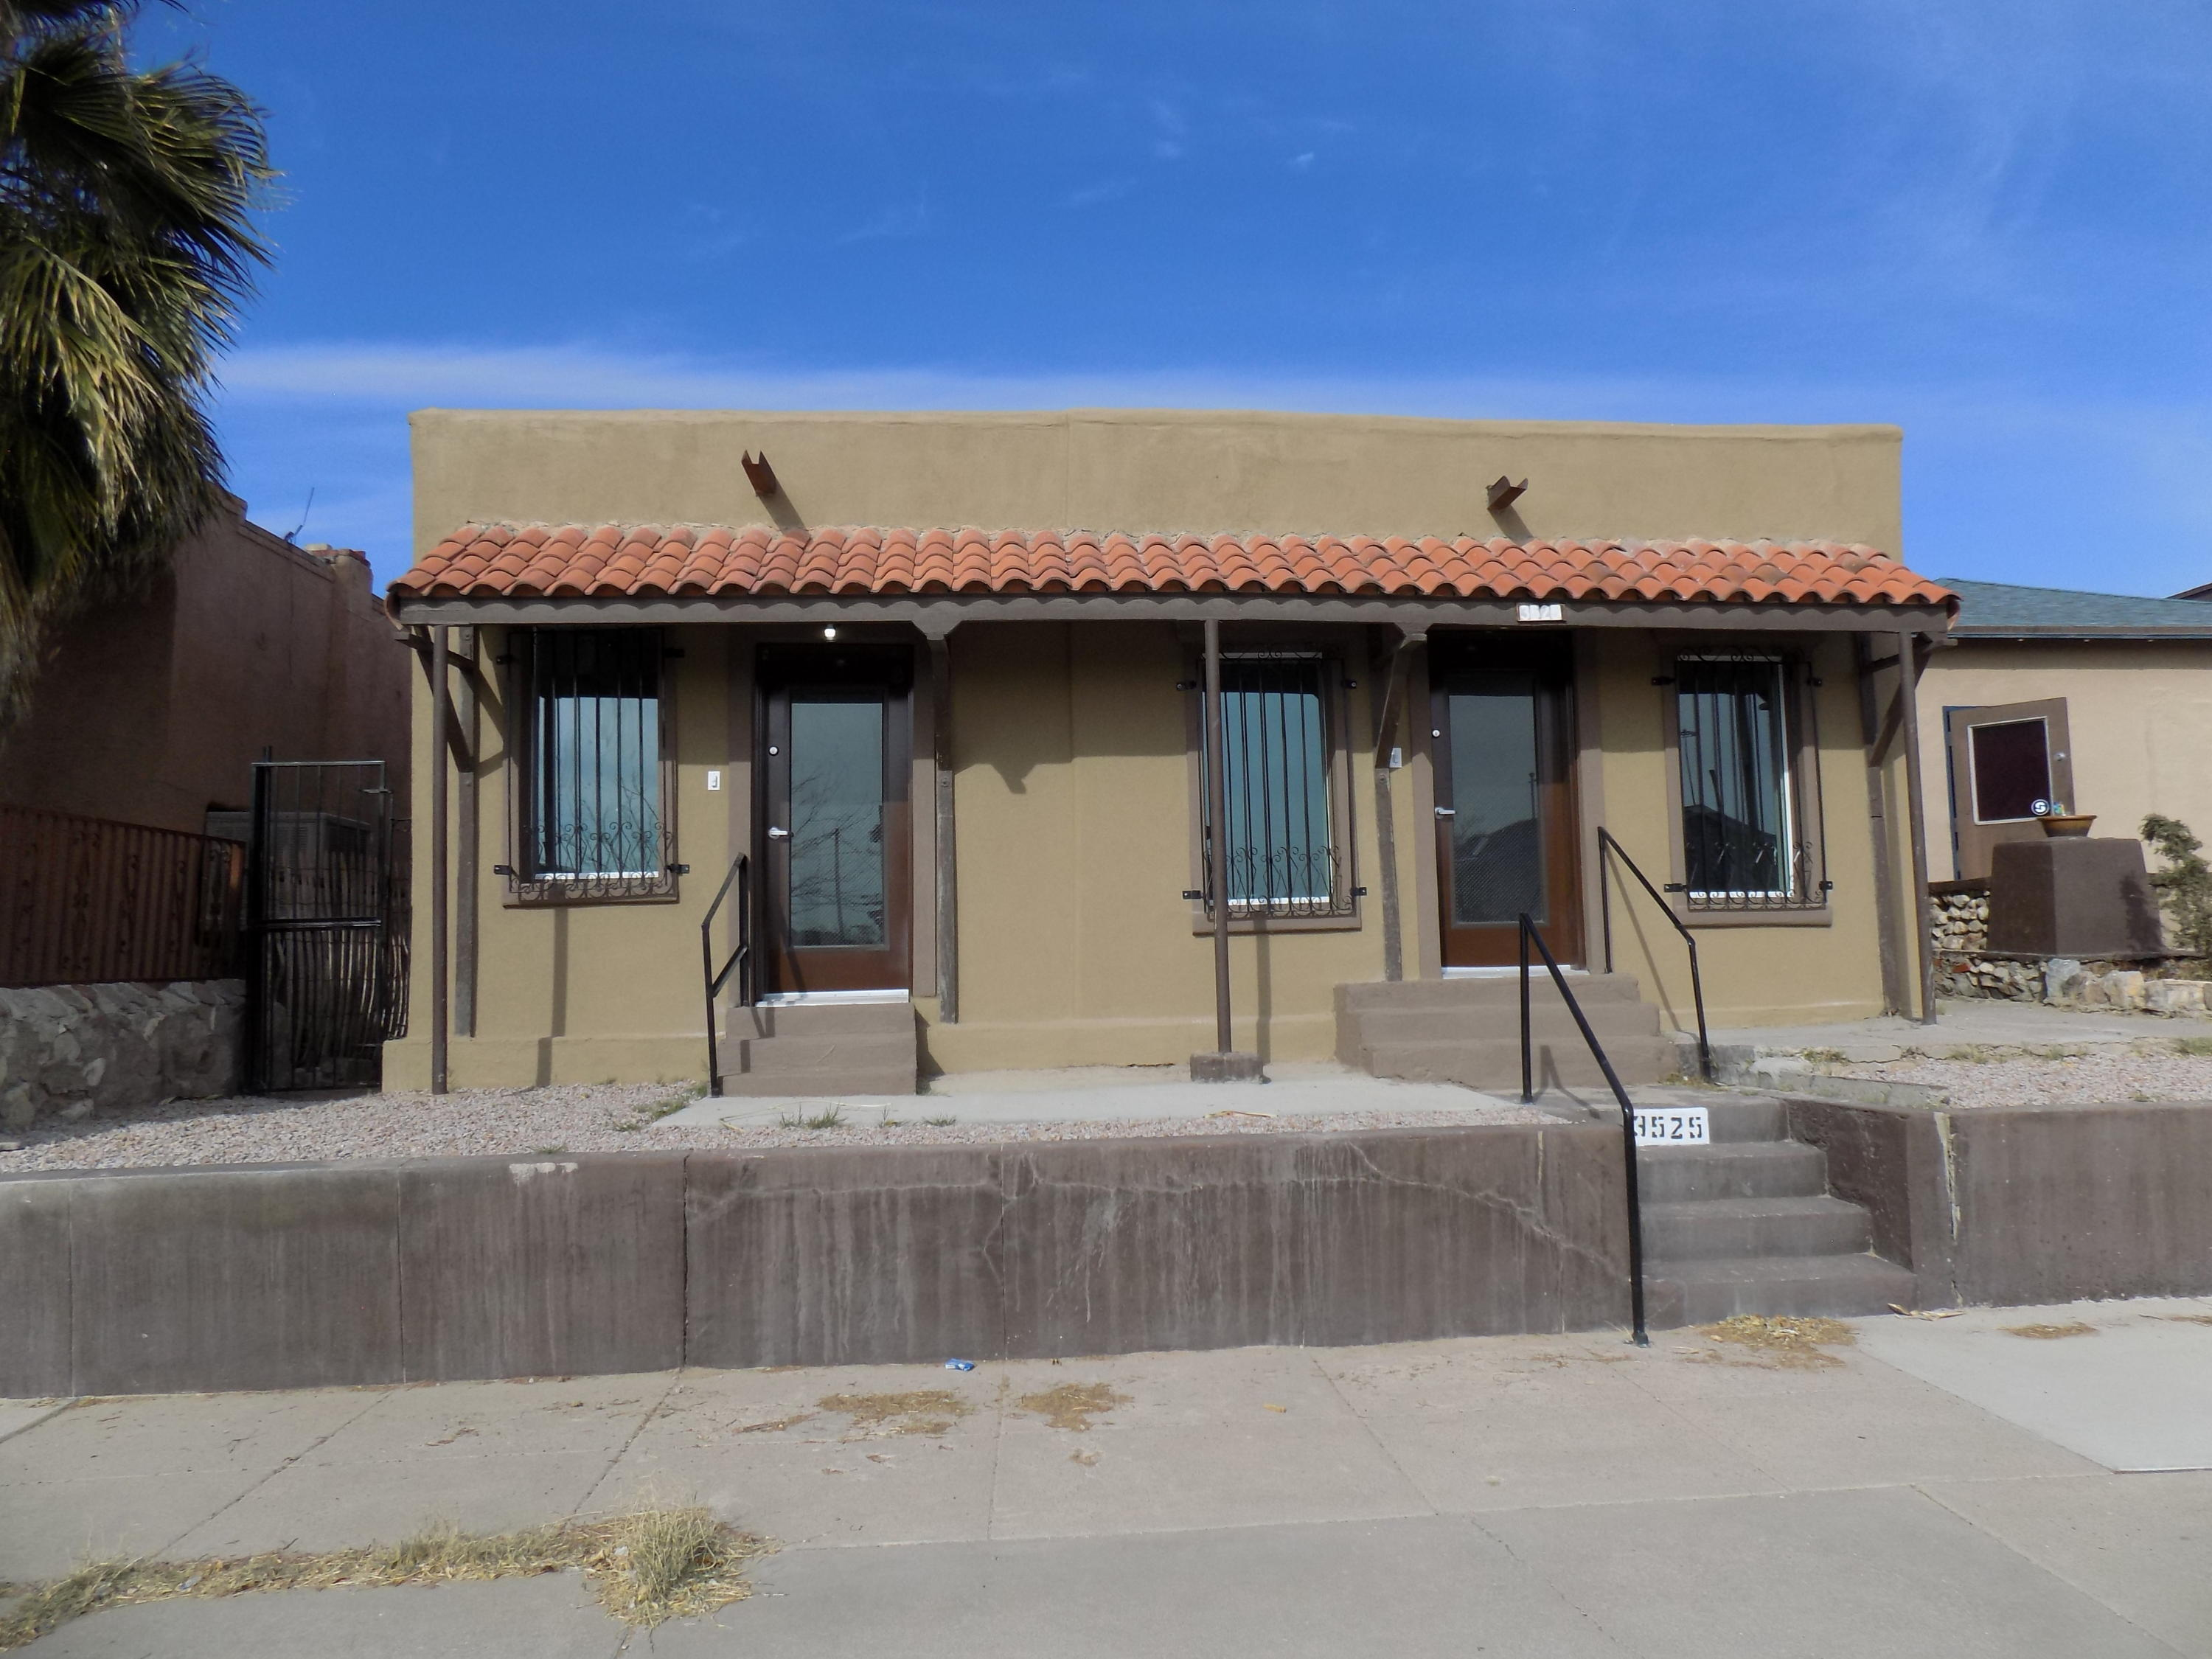 3525 WYOMING Avenue, El Paso, Texas 79903, ,Commercial,For sale,WYOMING,839435